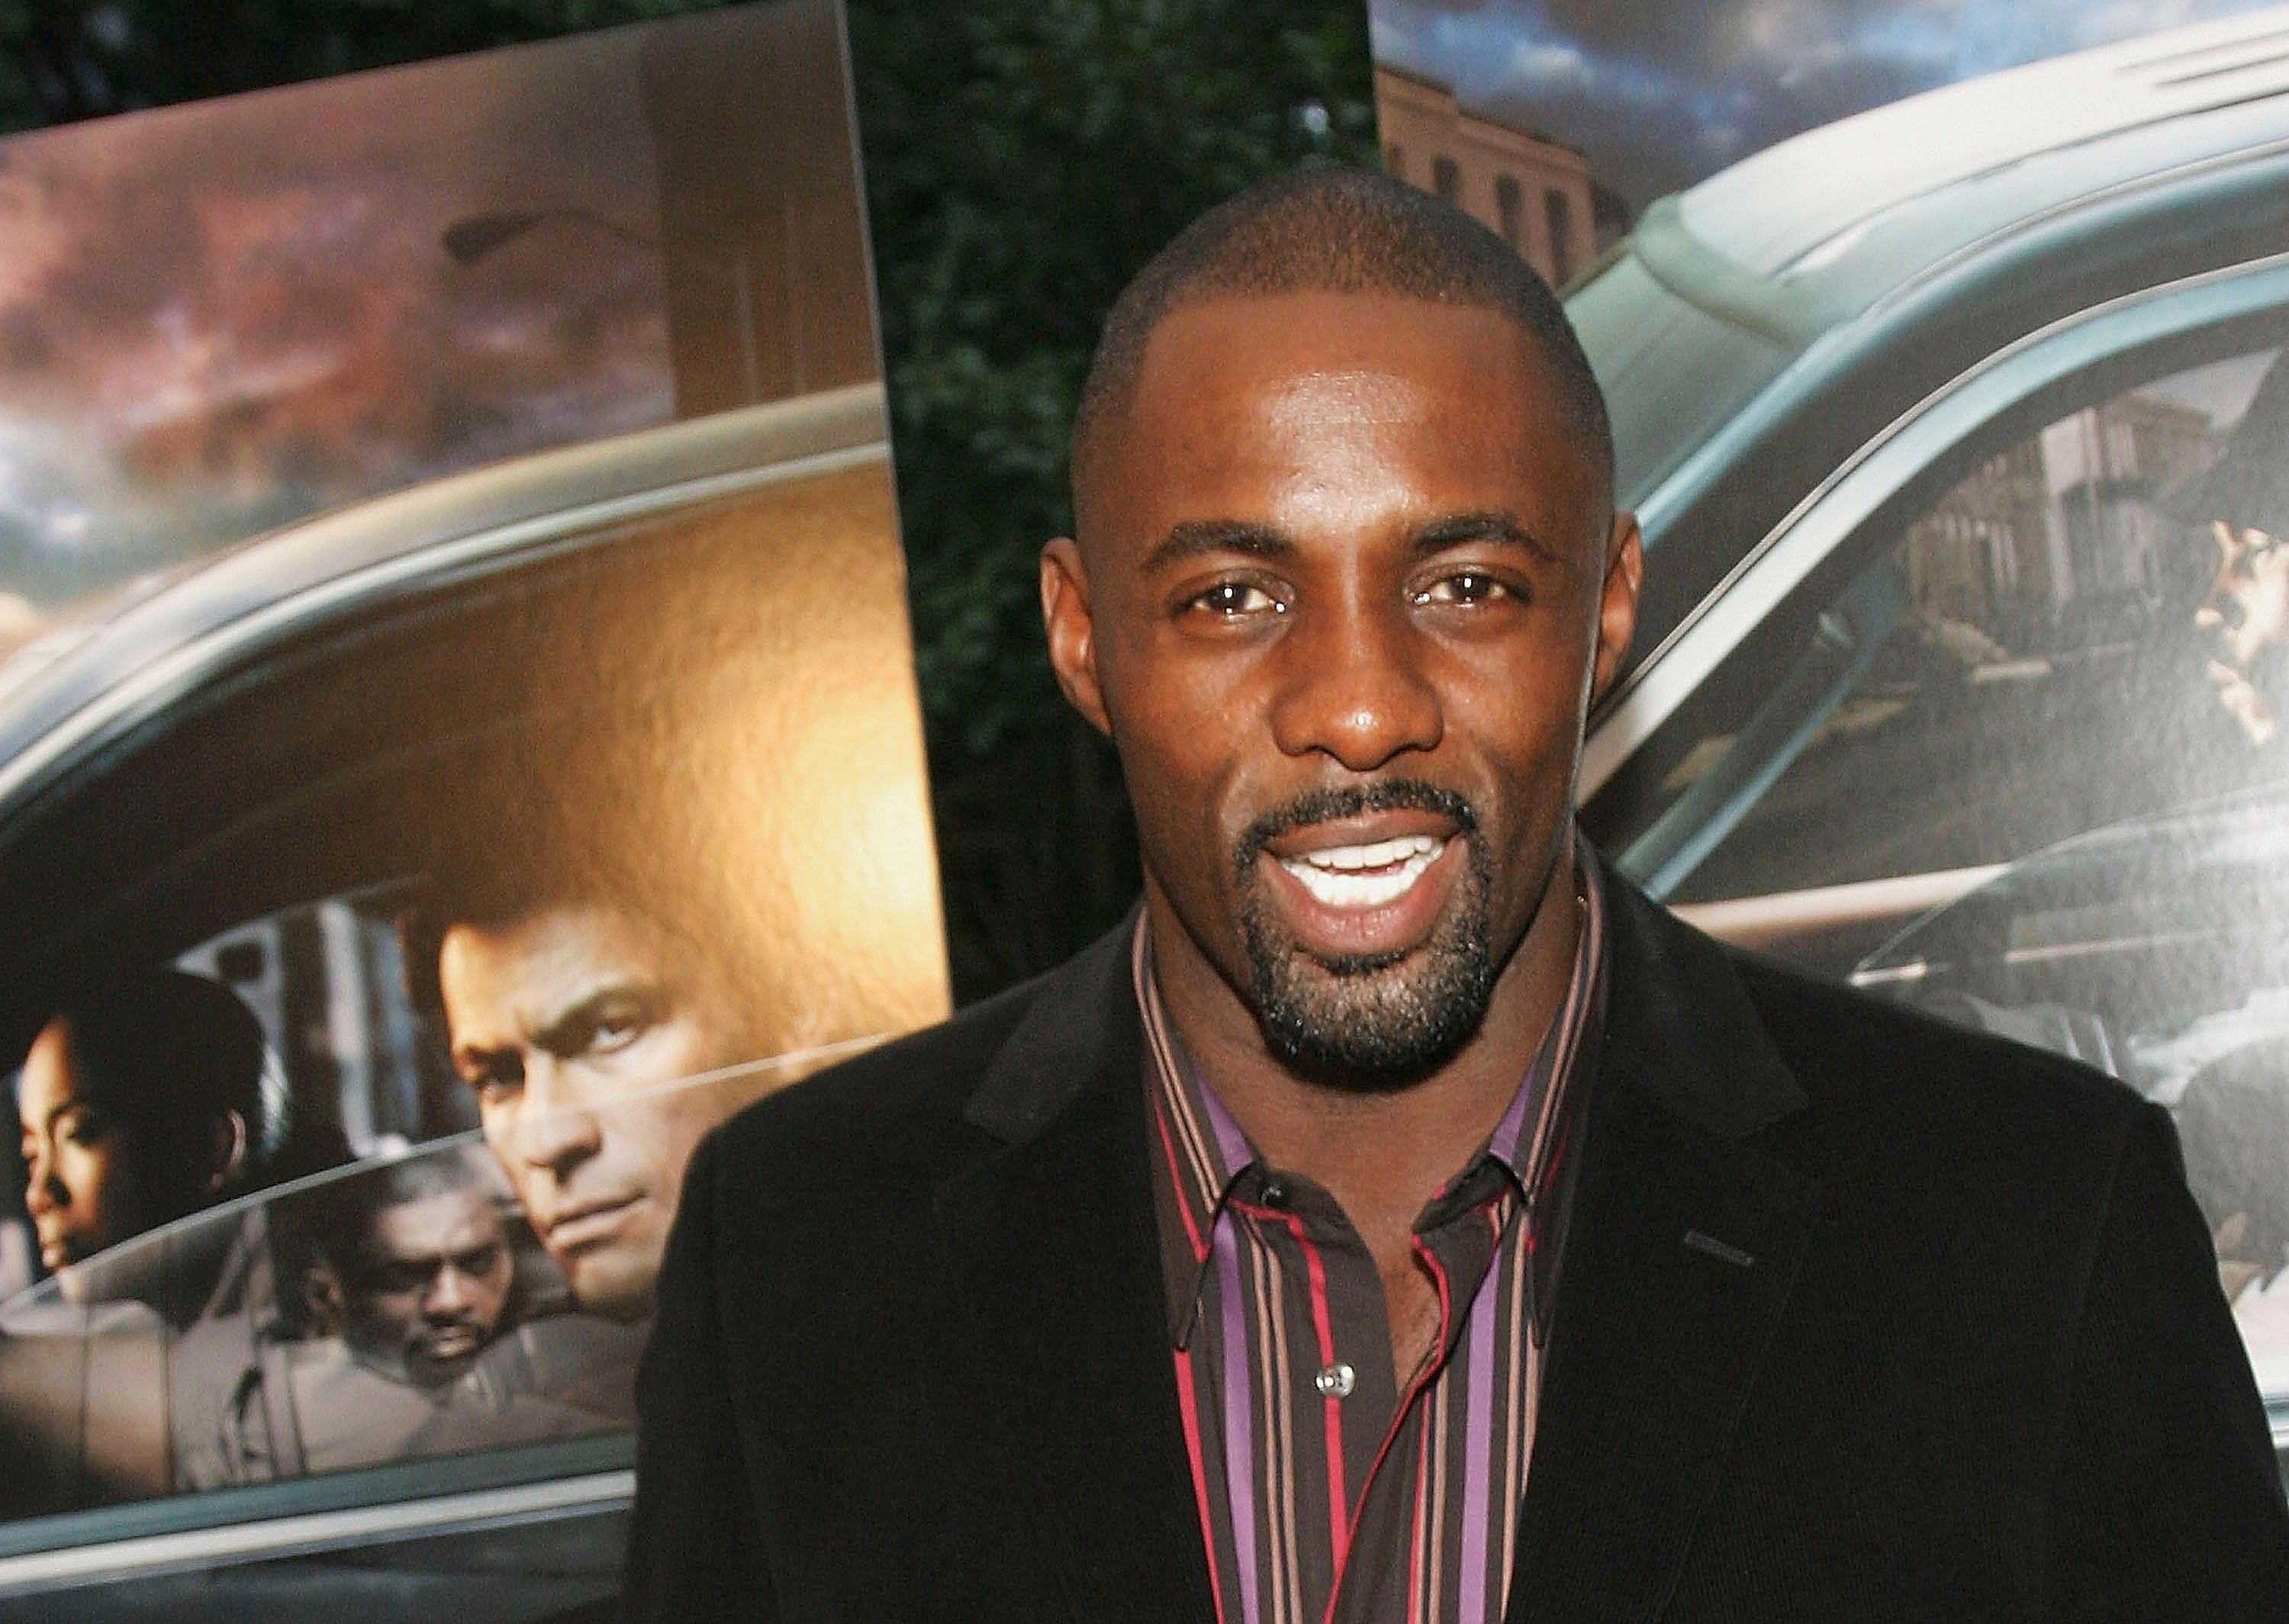 Idris Elba at an event for The Wire